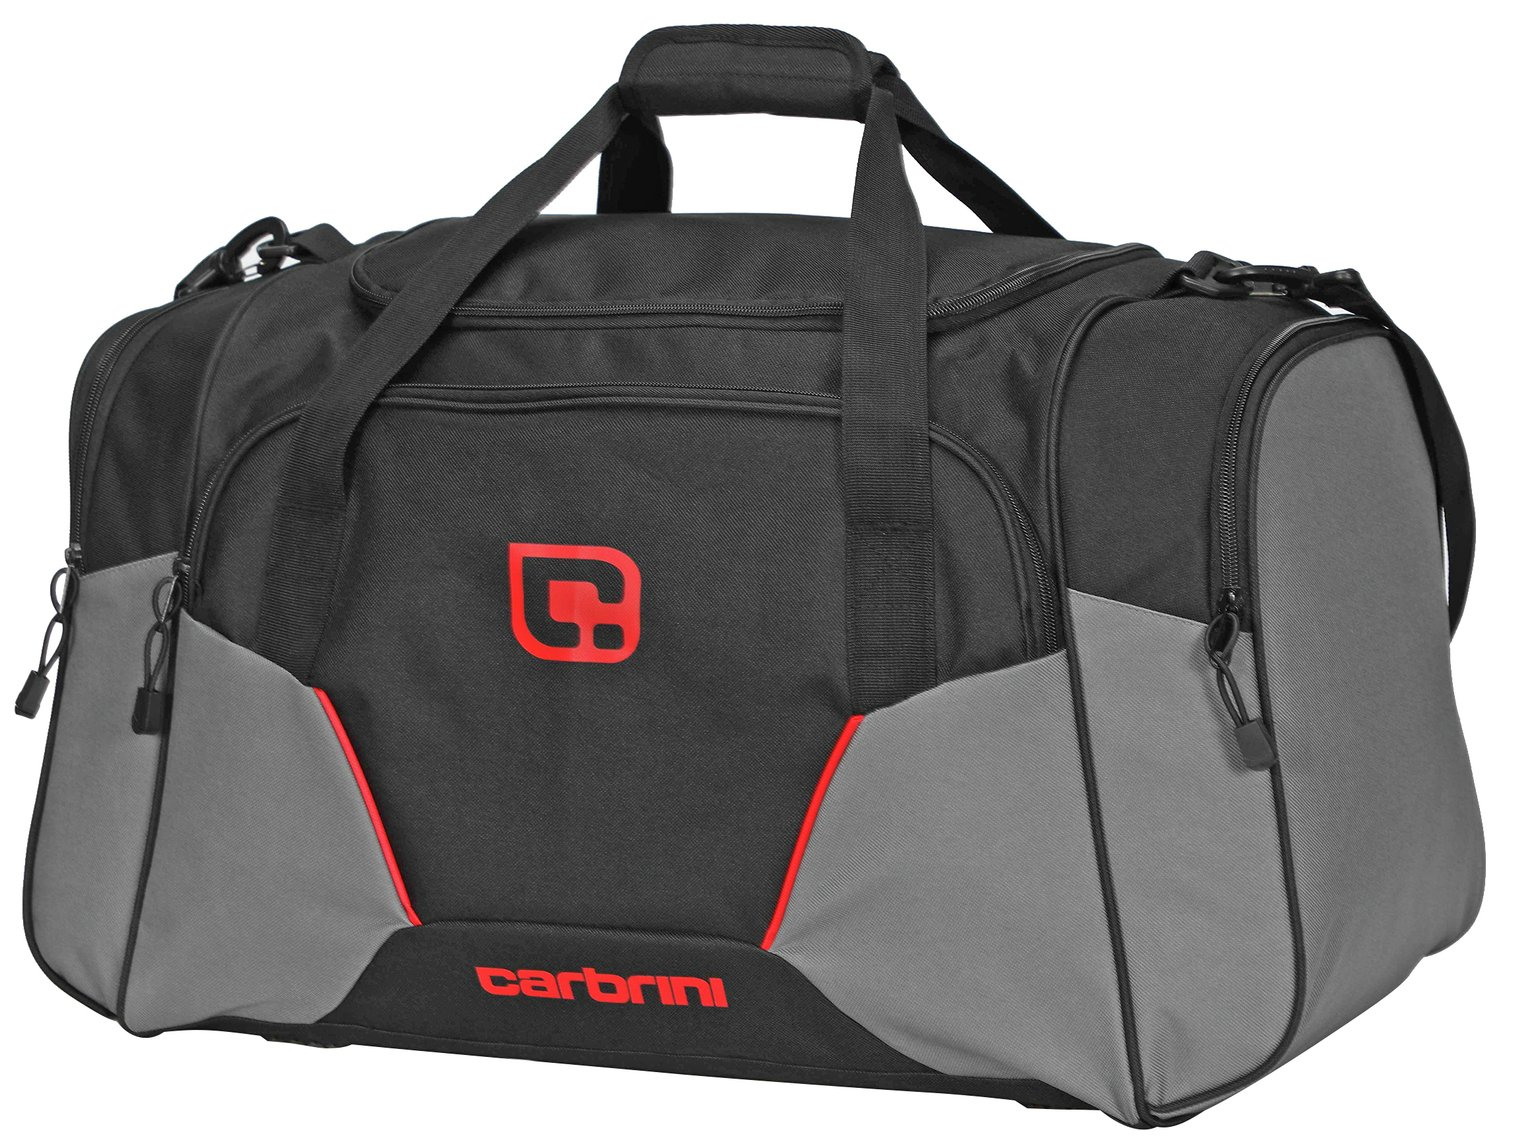 Carbrini No Doubt Large Black and Grey Holdall